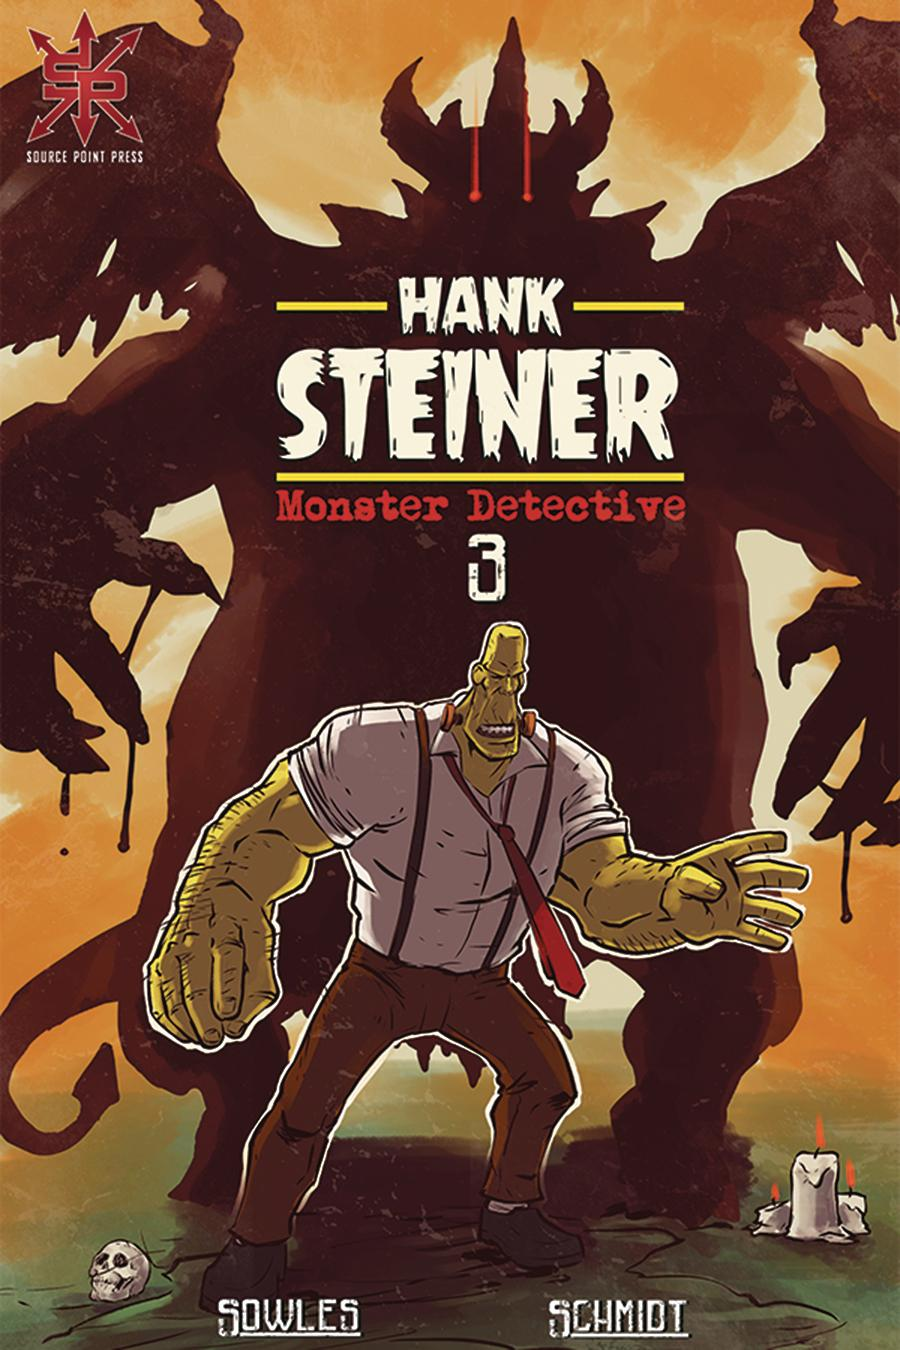 Hank Steiner Monster Detective #3